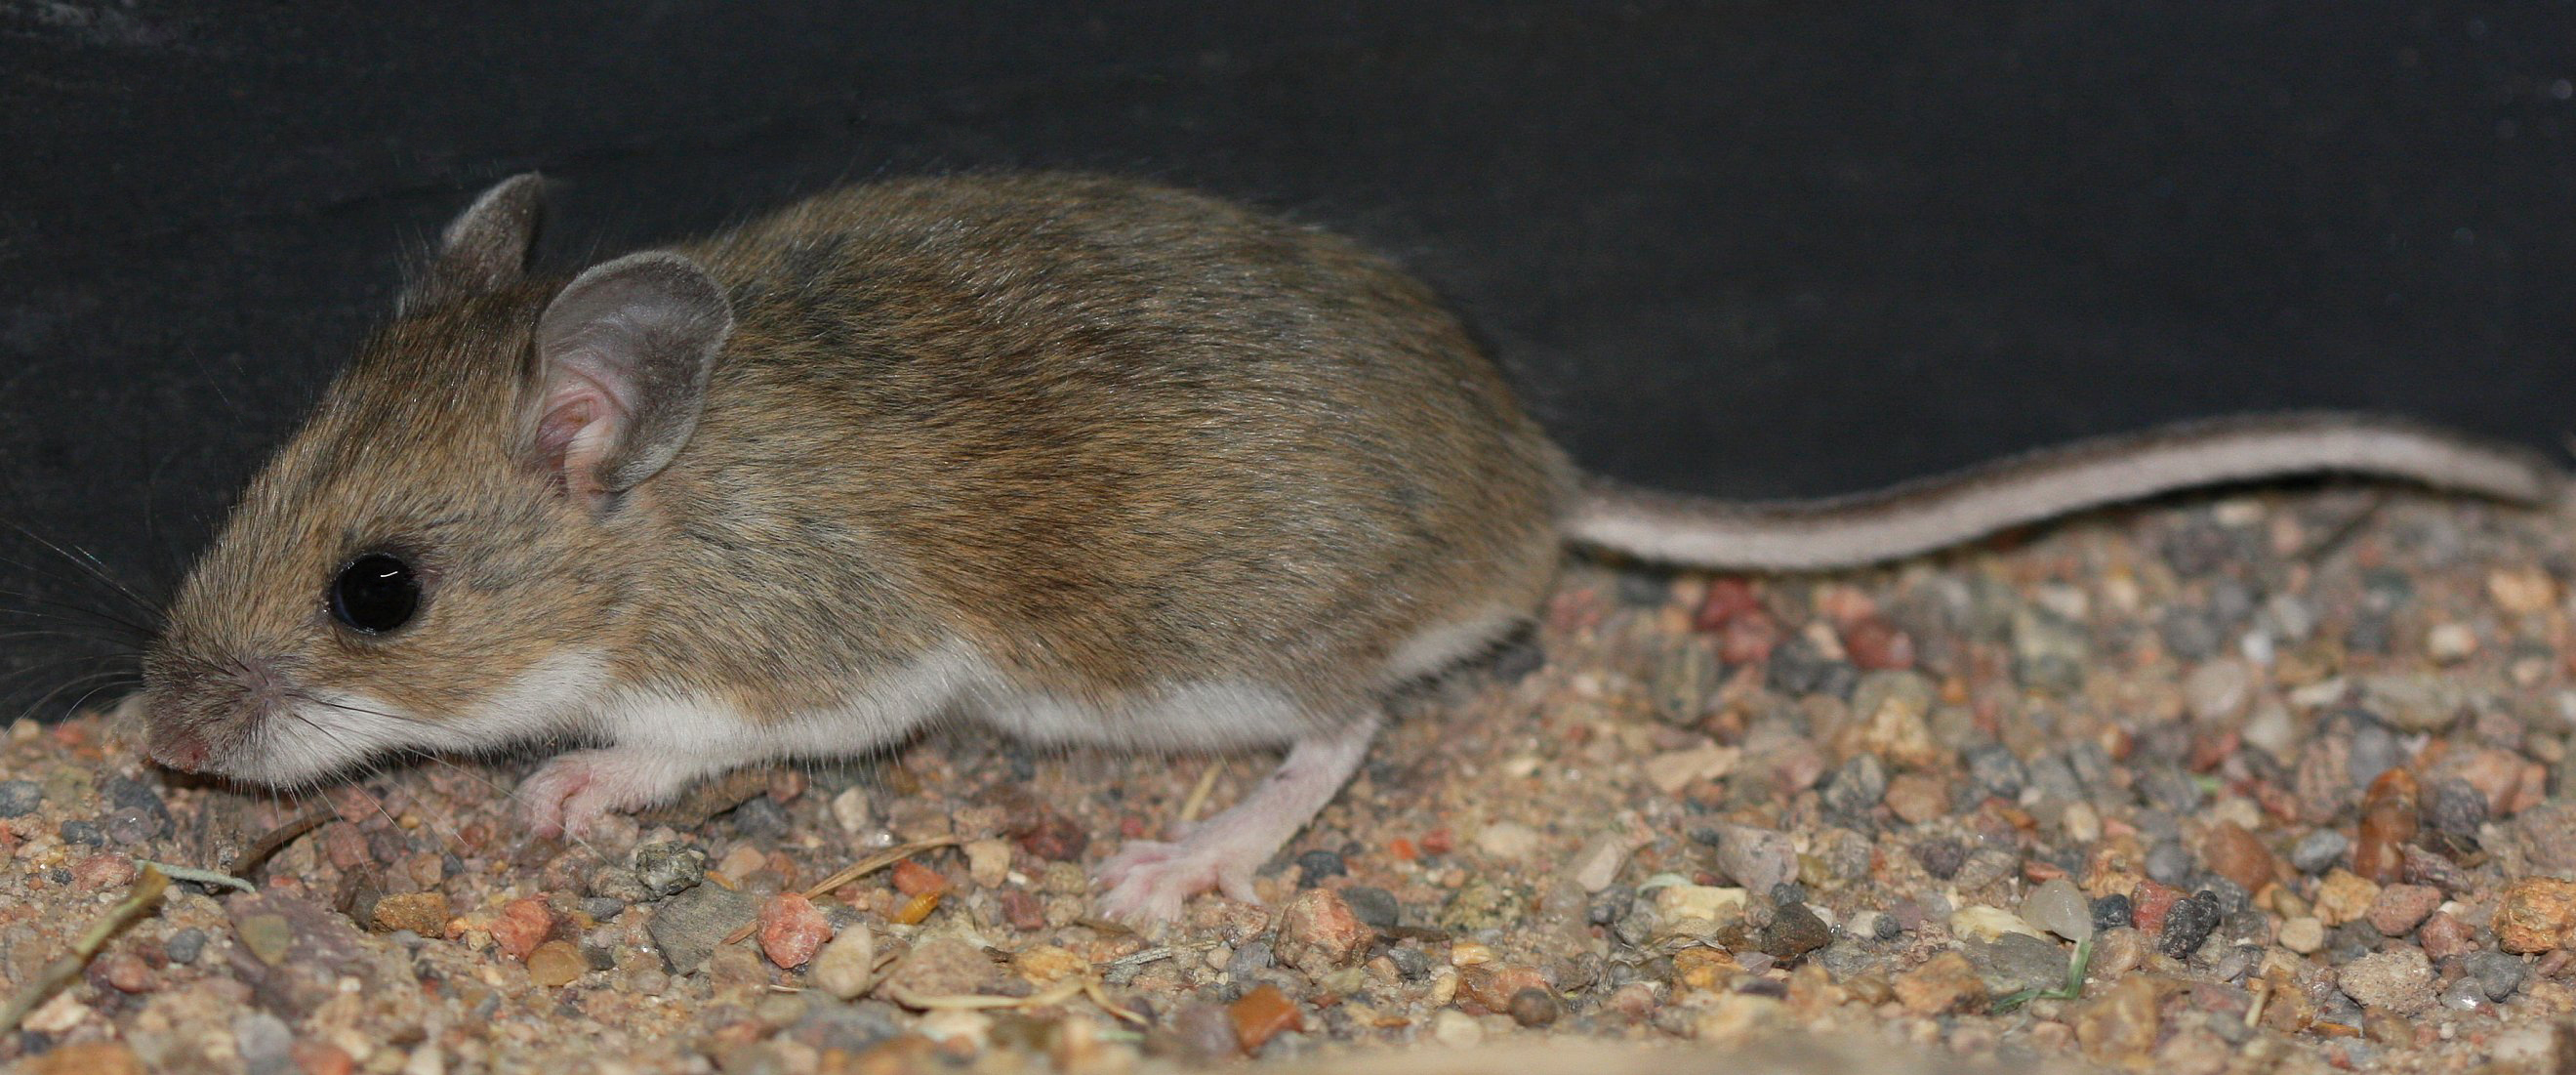 Rodents, your car, and hantavirus: What to do if you suspect ...